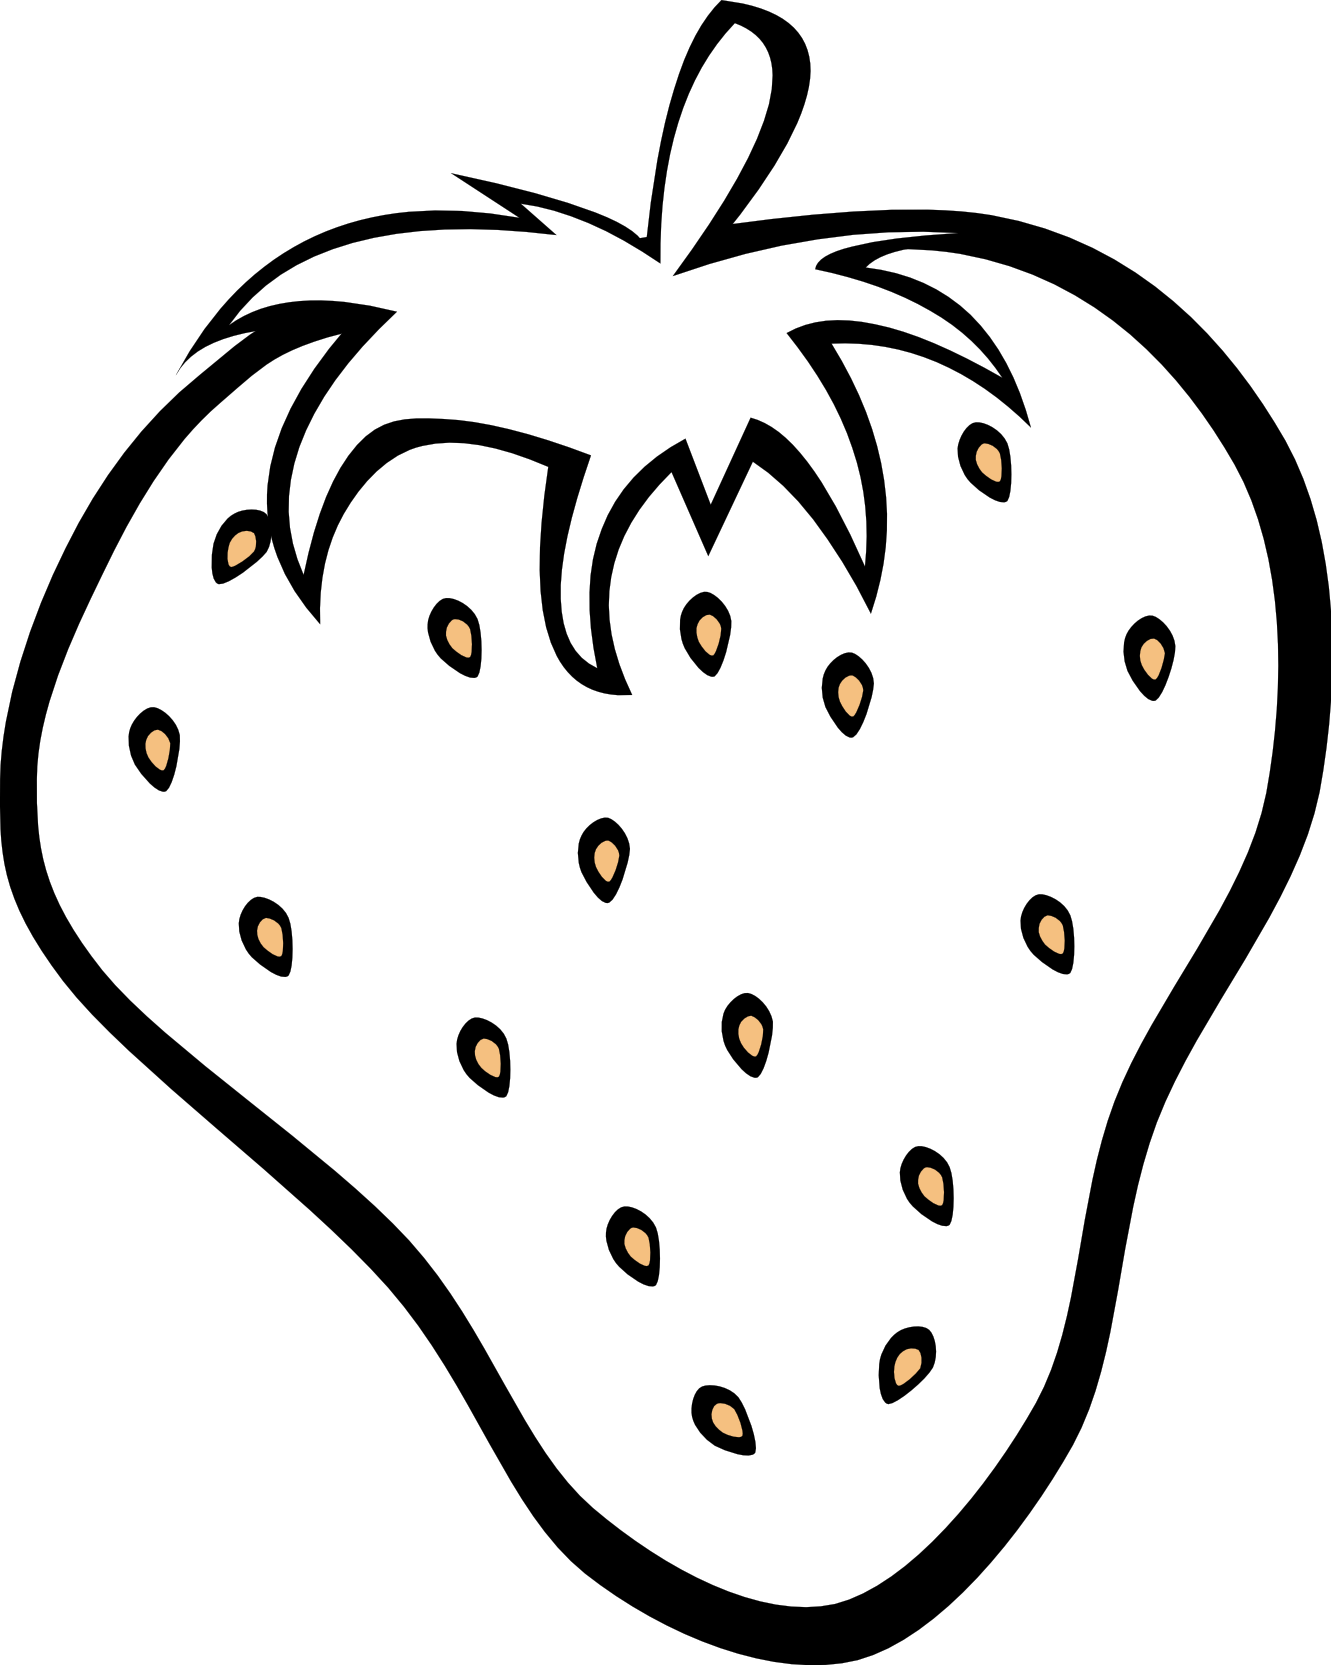 Strawberries clipart orange. Black and white fruit